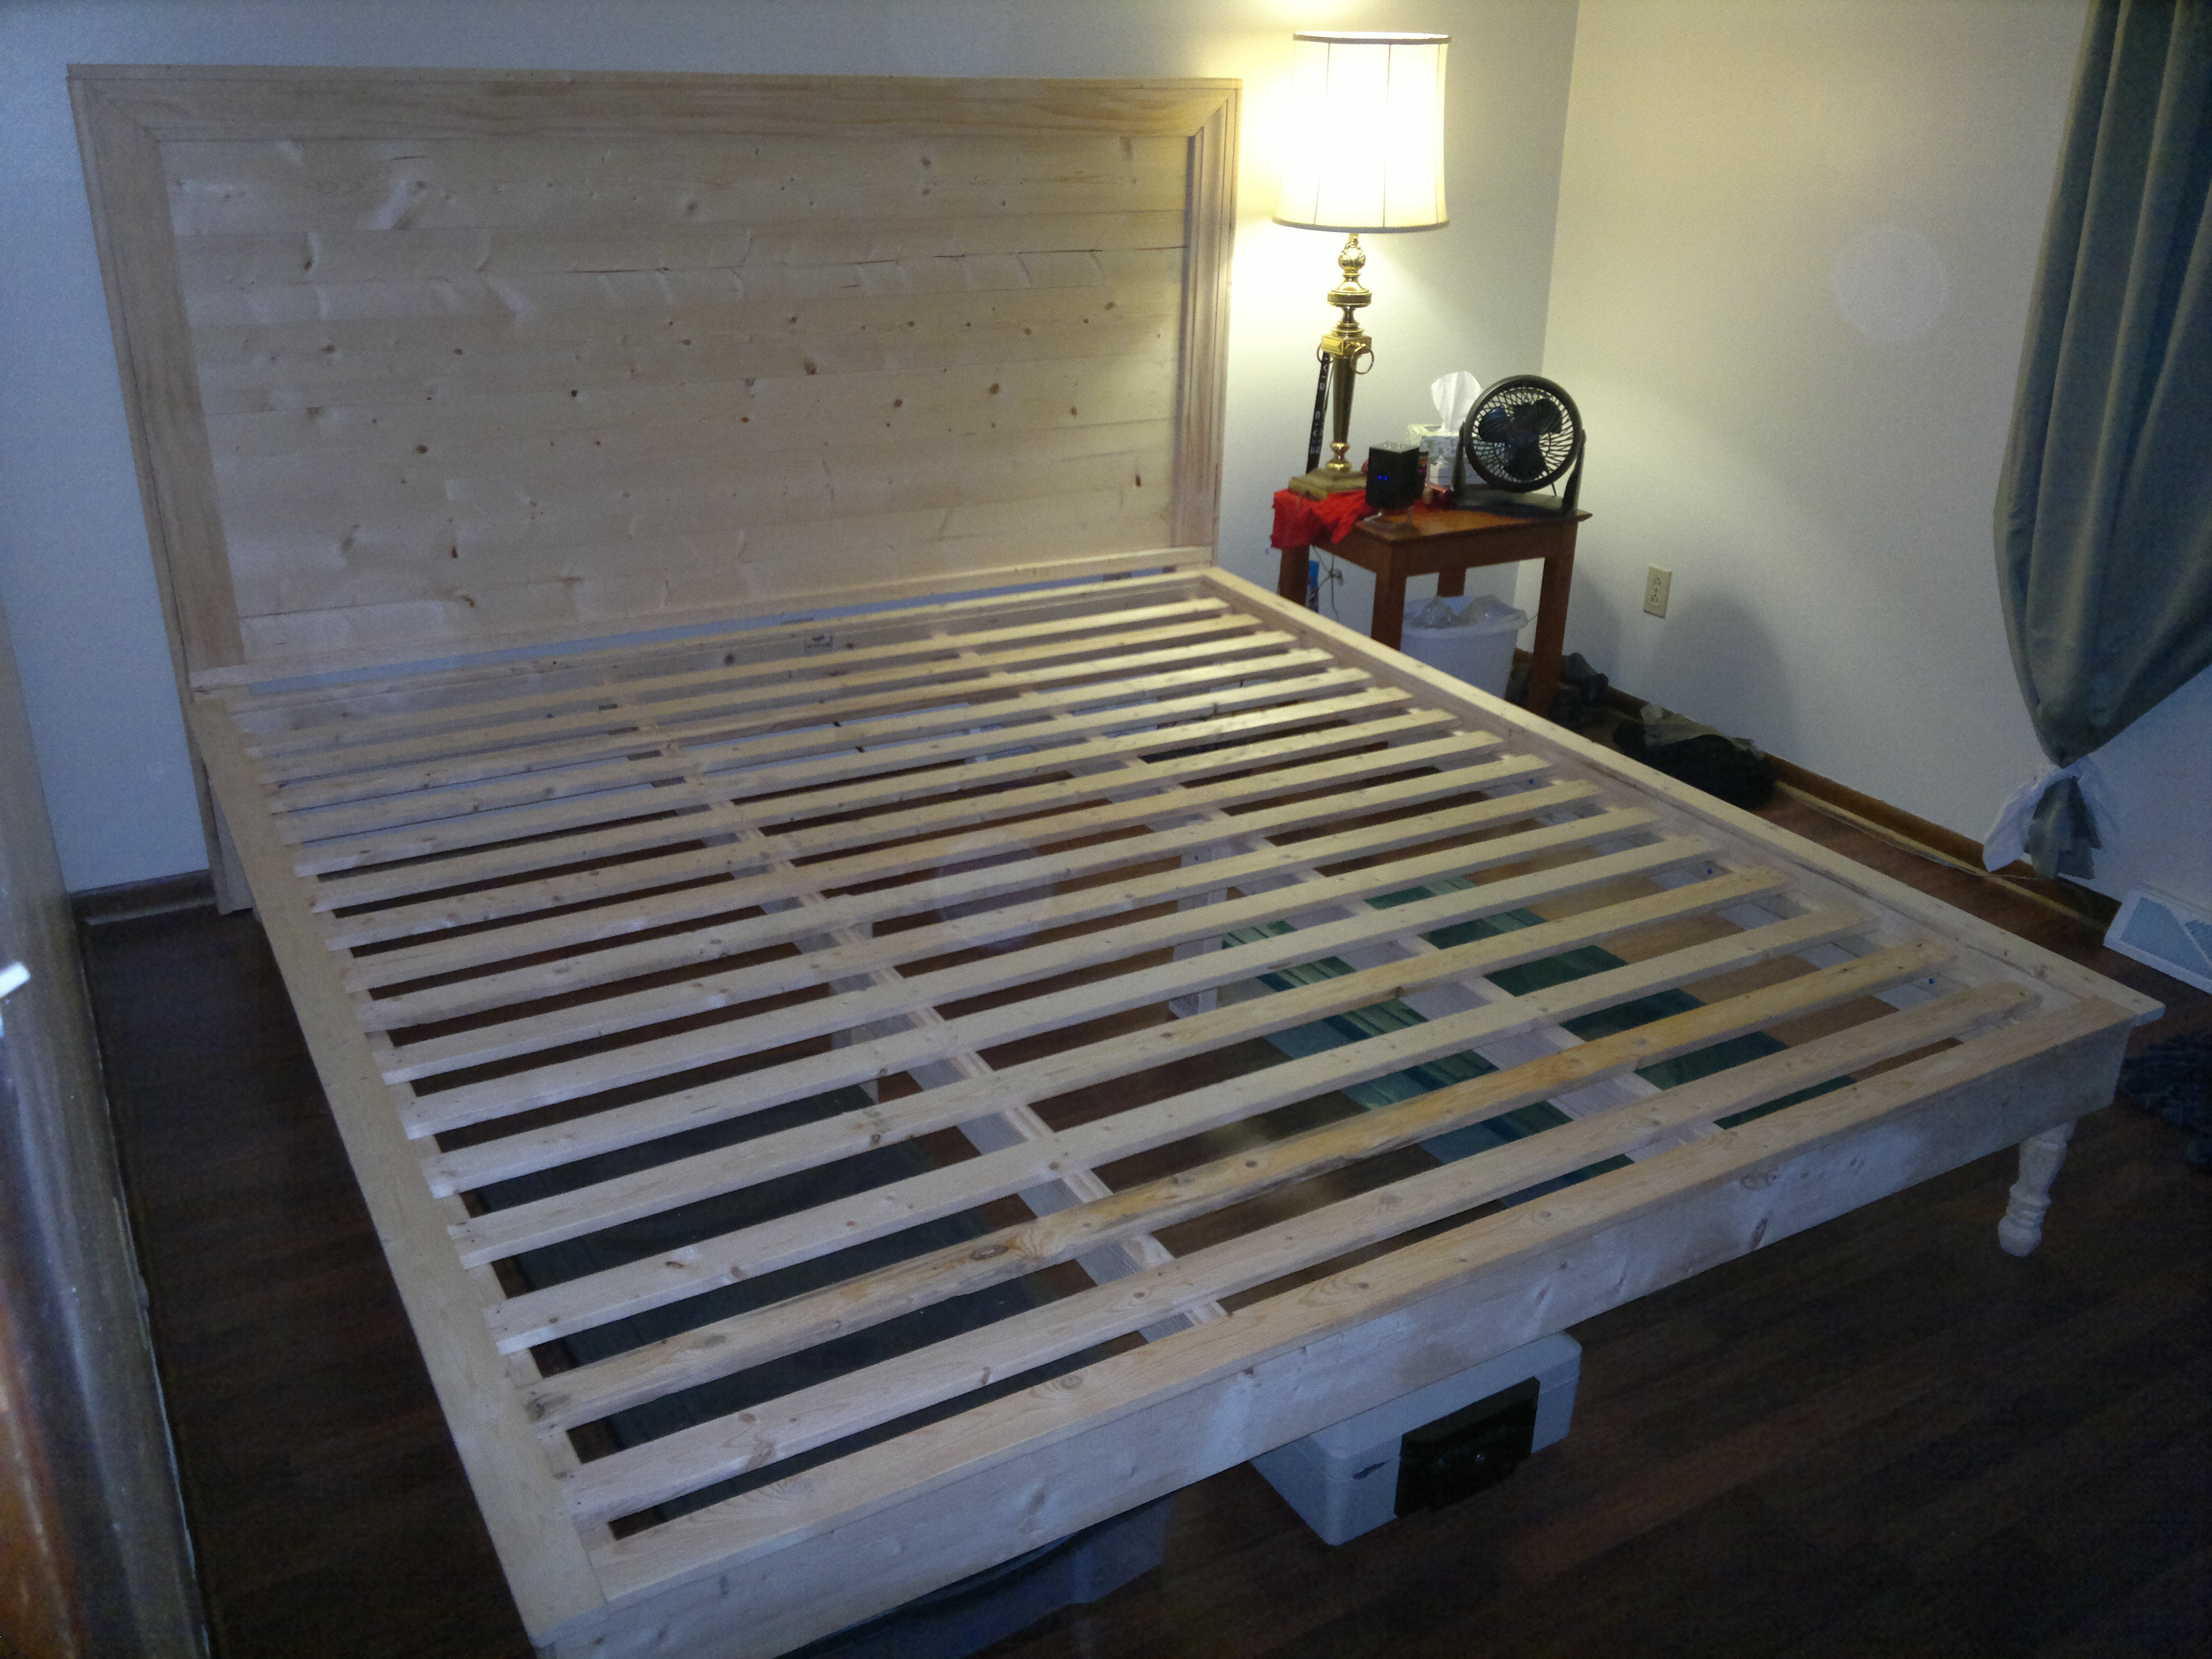 diy king size platform bed frame plans | Discover Woodworking Projects